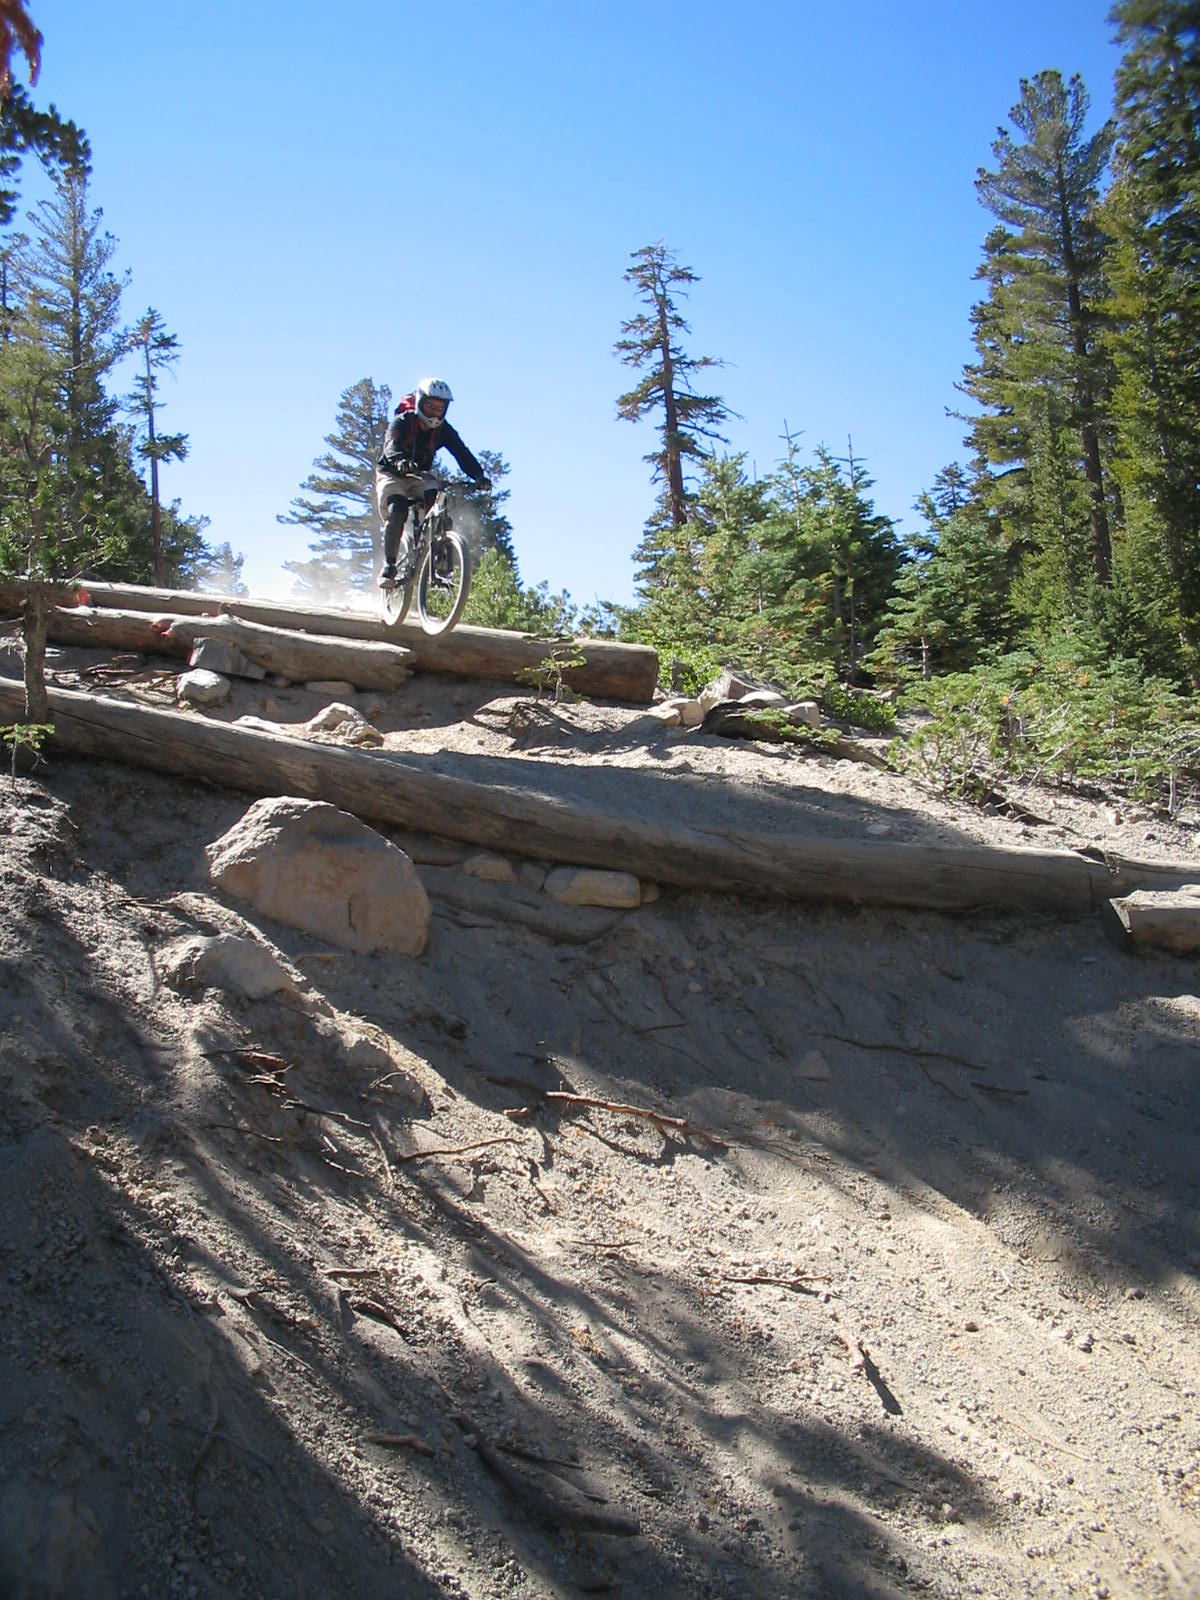 Eric Mammoth Mountain Bike Park